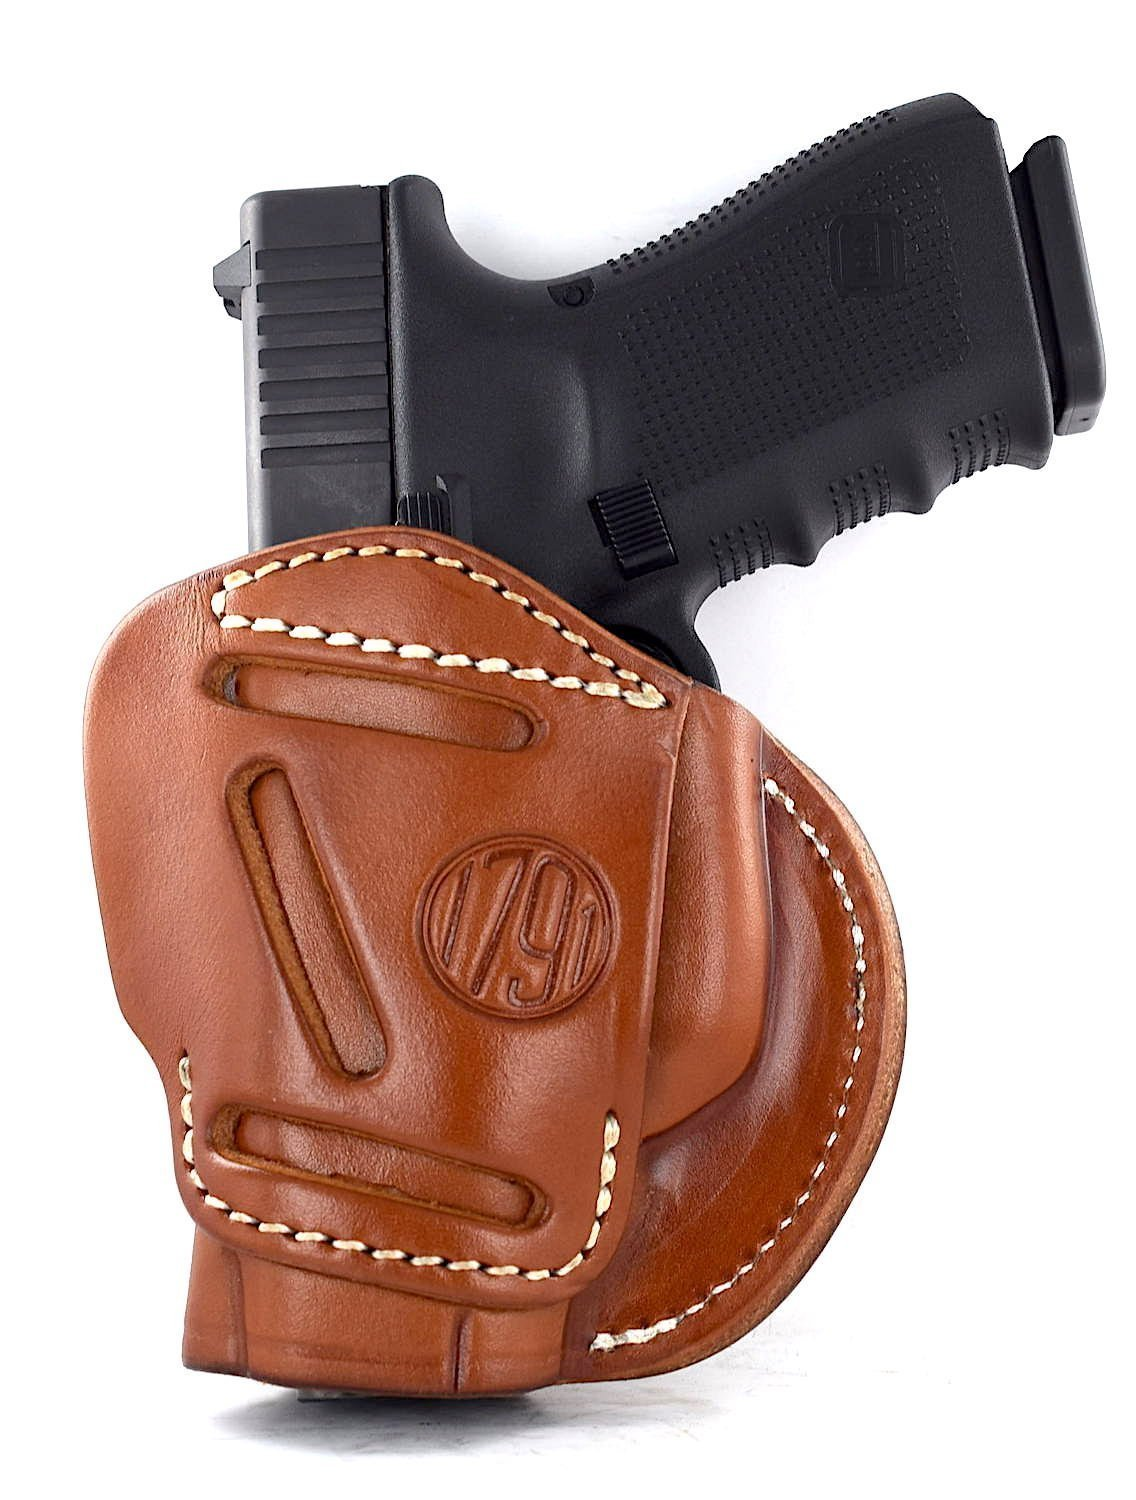 1791 GUNLEATHER 3-WAY Glock 26 Holster - OWB CCW Holster Ambidextrous - Right or Left Handed Leather Gun Holster - Fits Glock 25, 26, 27, 29, 30, 32, 33 (3WAY SIZE 3)